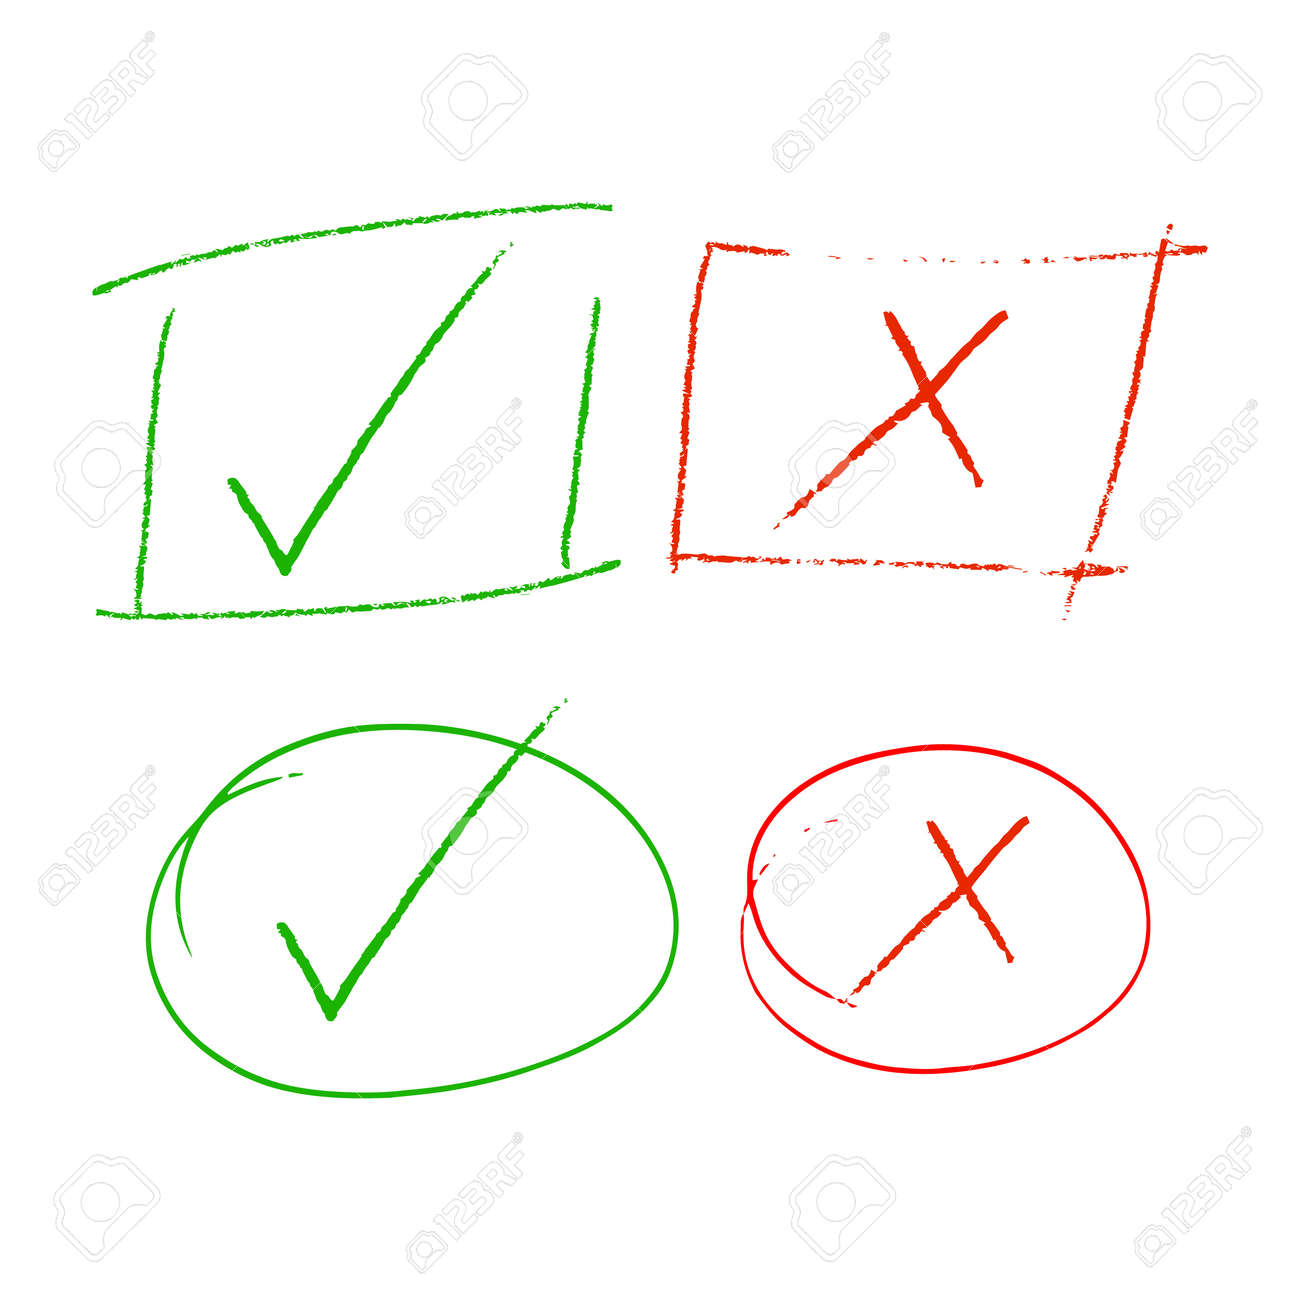 Check marks, Check and cross highlight sign, checklist marking reject and accept mark Green tick and red cross - 171608635